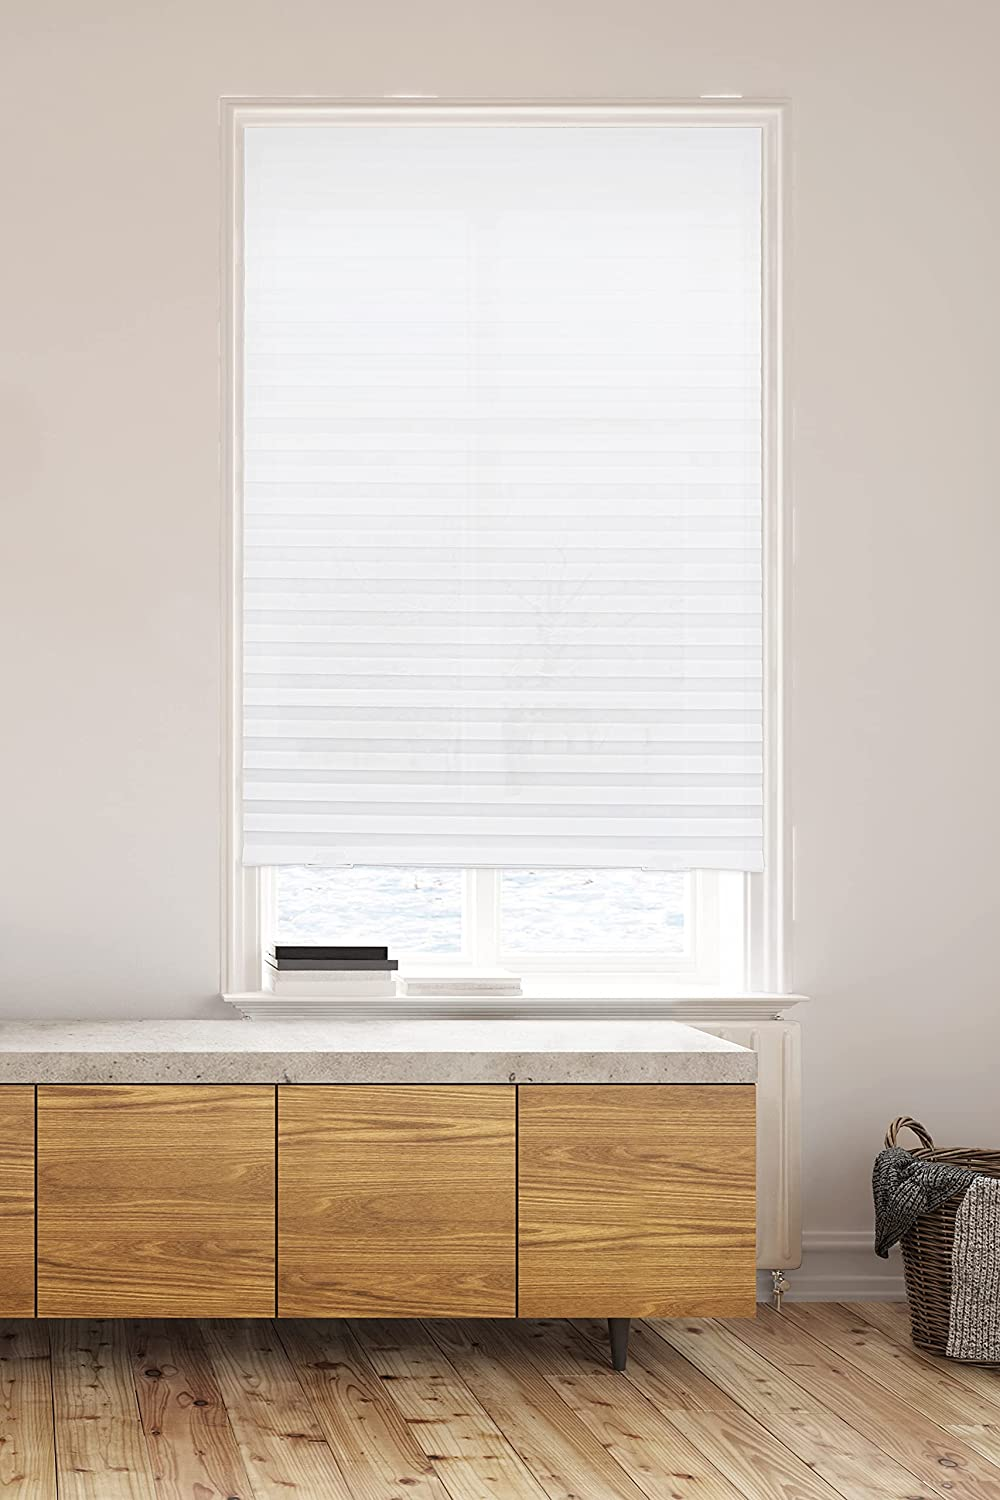 Lumi Max 52% OFF Cordless Temporary Shades with Paper EZ-Clips Light 40% OFF Cheap Sale Filter